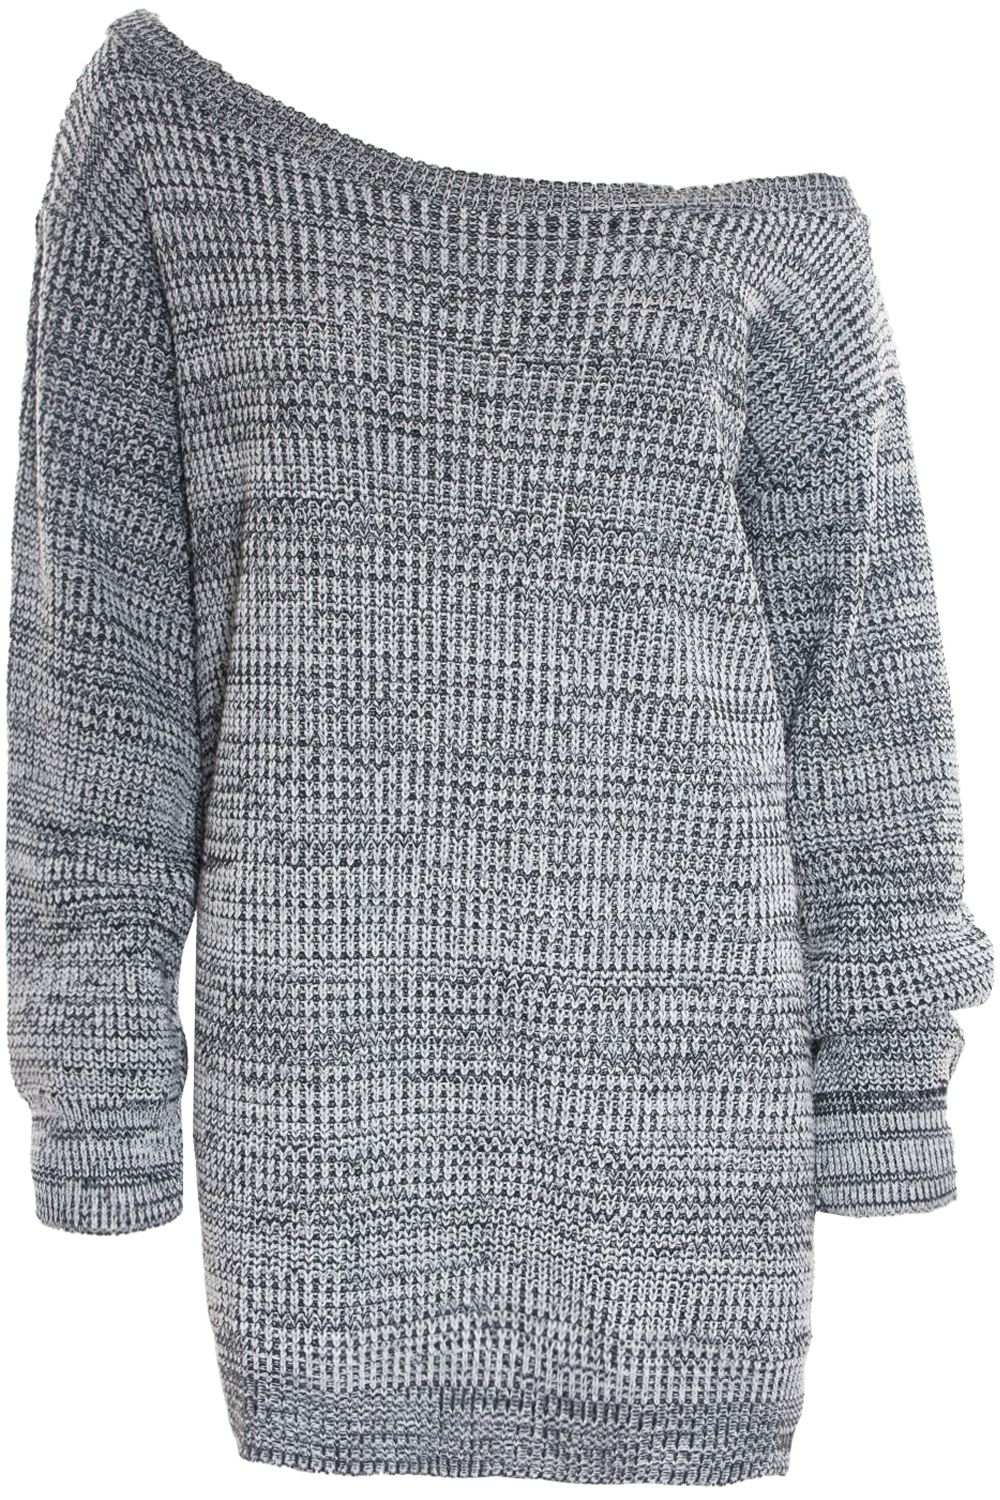 Find womens tunic jumper at ShopStyle. Shop the latest collection of womens tunic jumper from the most popular stores - all in one place.